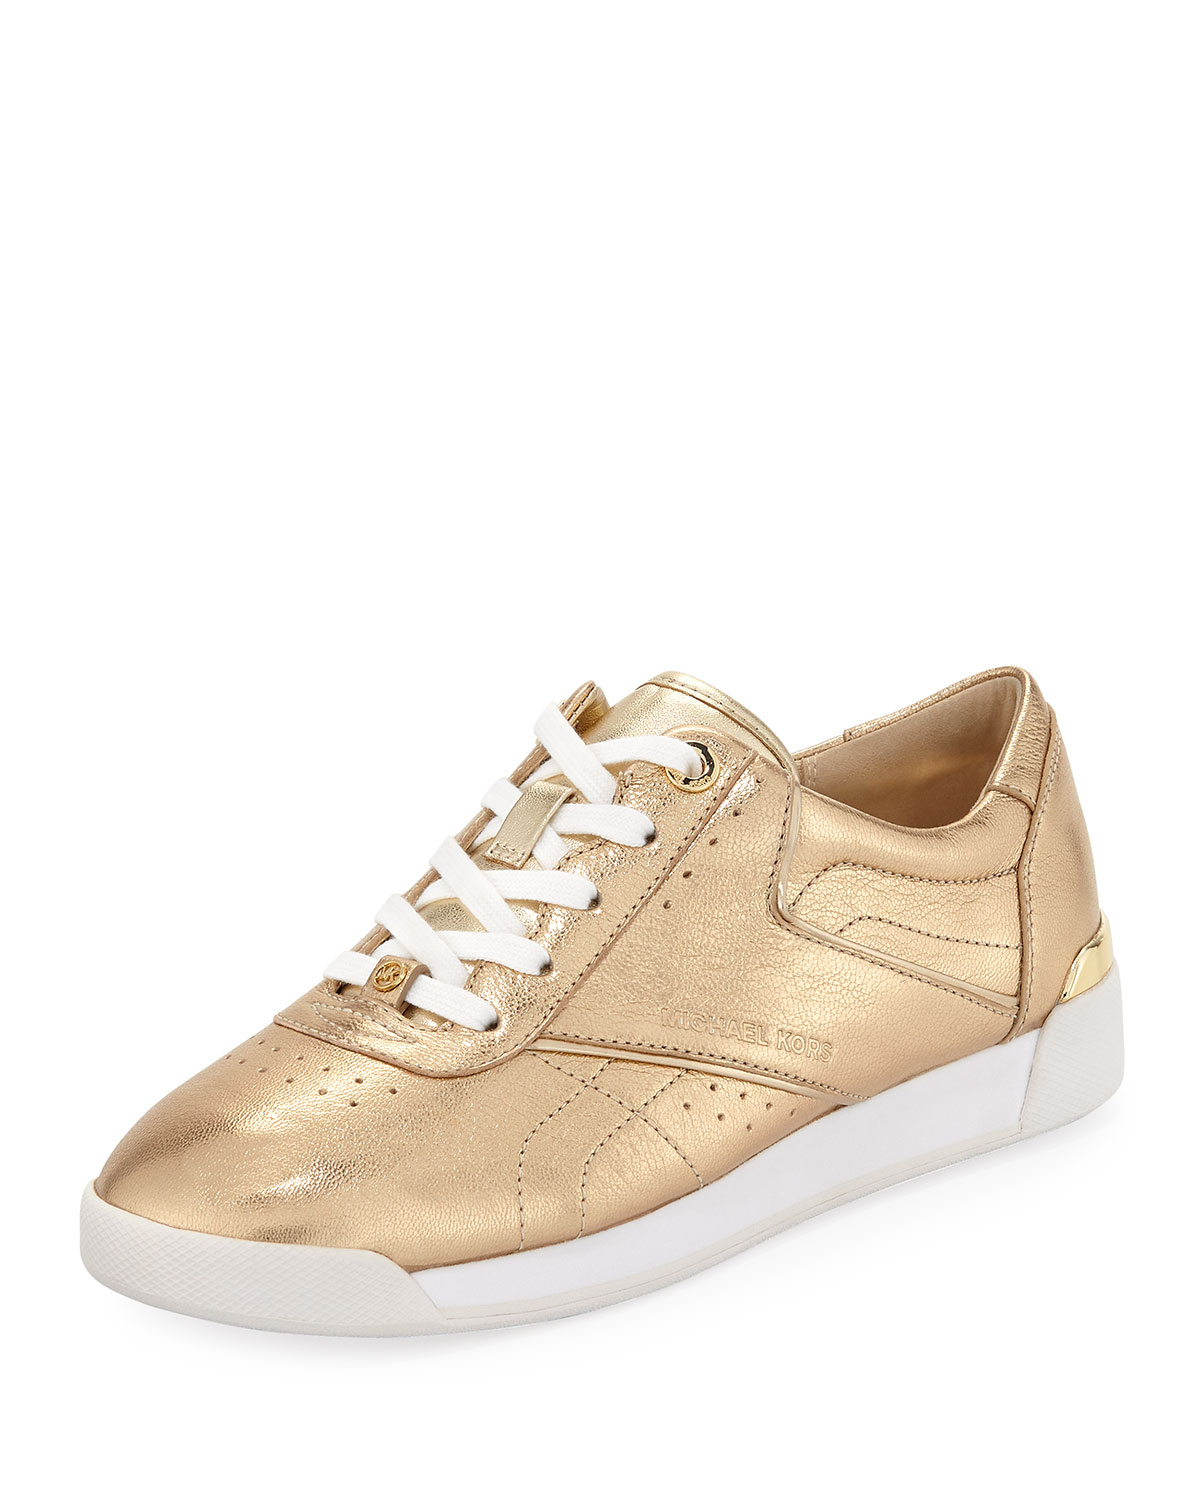 d65065cd32 MICHAEL Michael Kors Addie Metallic Lace-Up Sneakers, Gold | Neiman ...